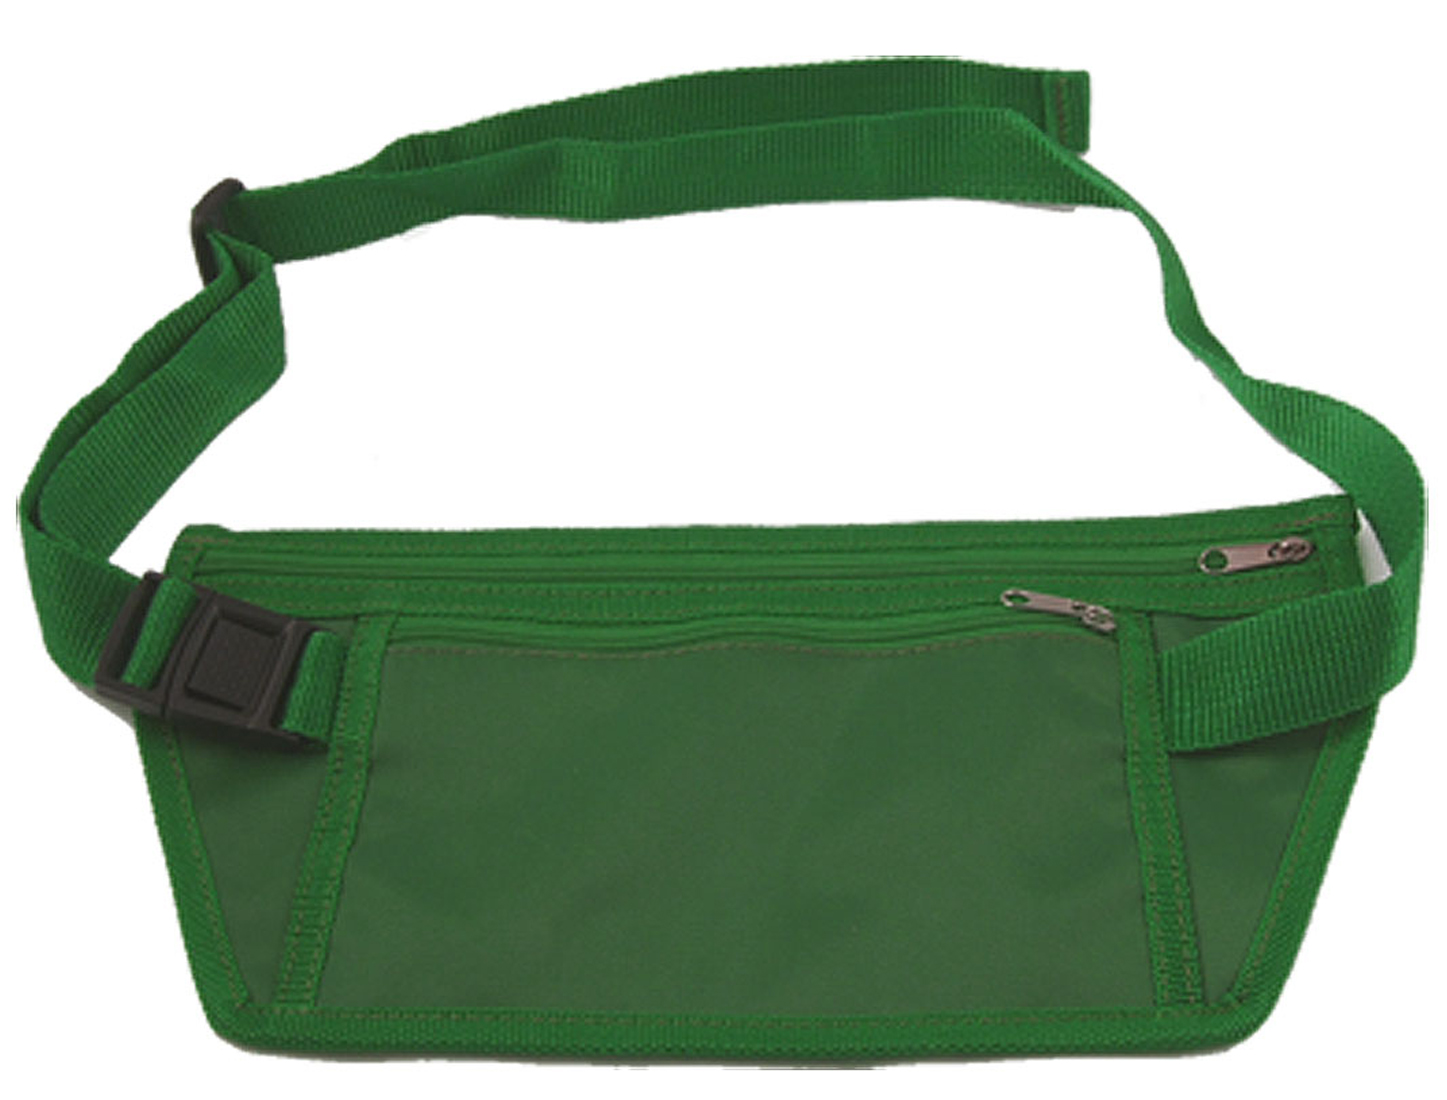 Side Release Buckle Green Nylon Ultra Flat Waist Pack Bag for Men